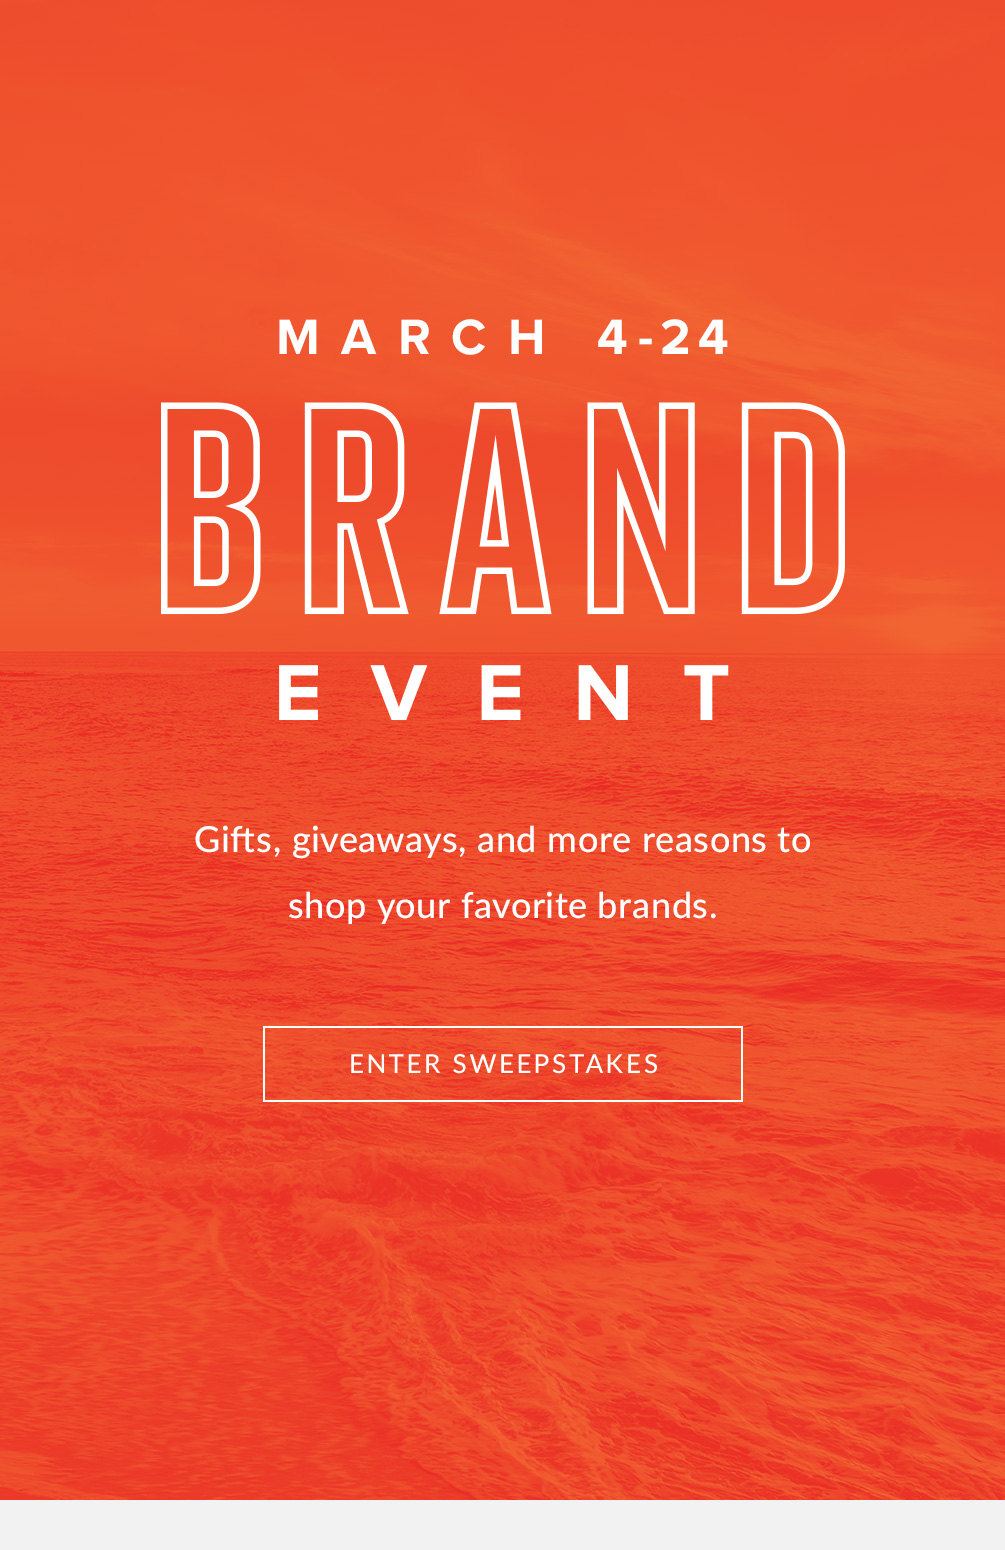 March 4-24 Brand Event